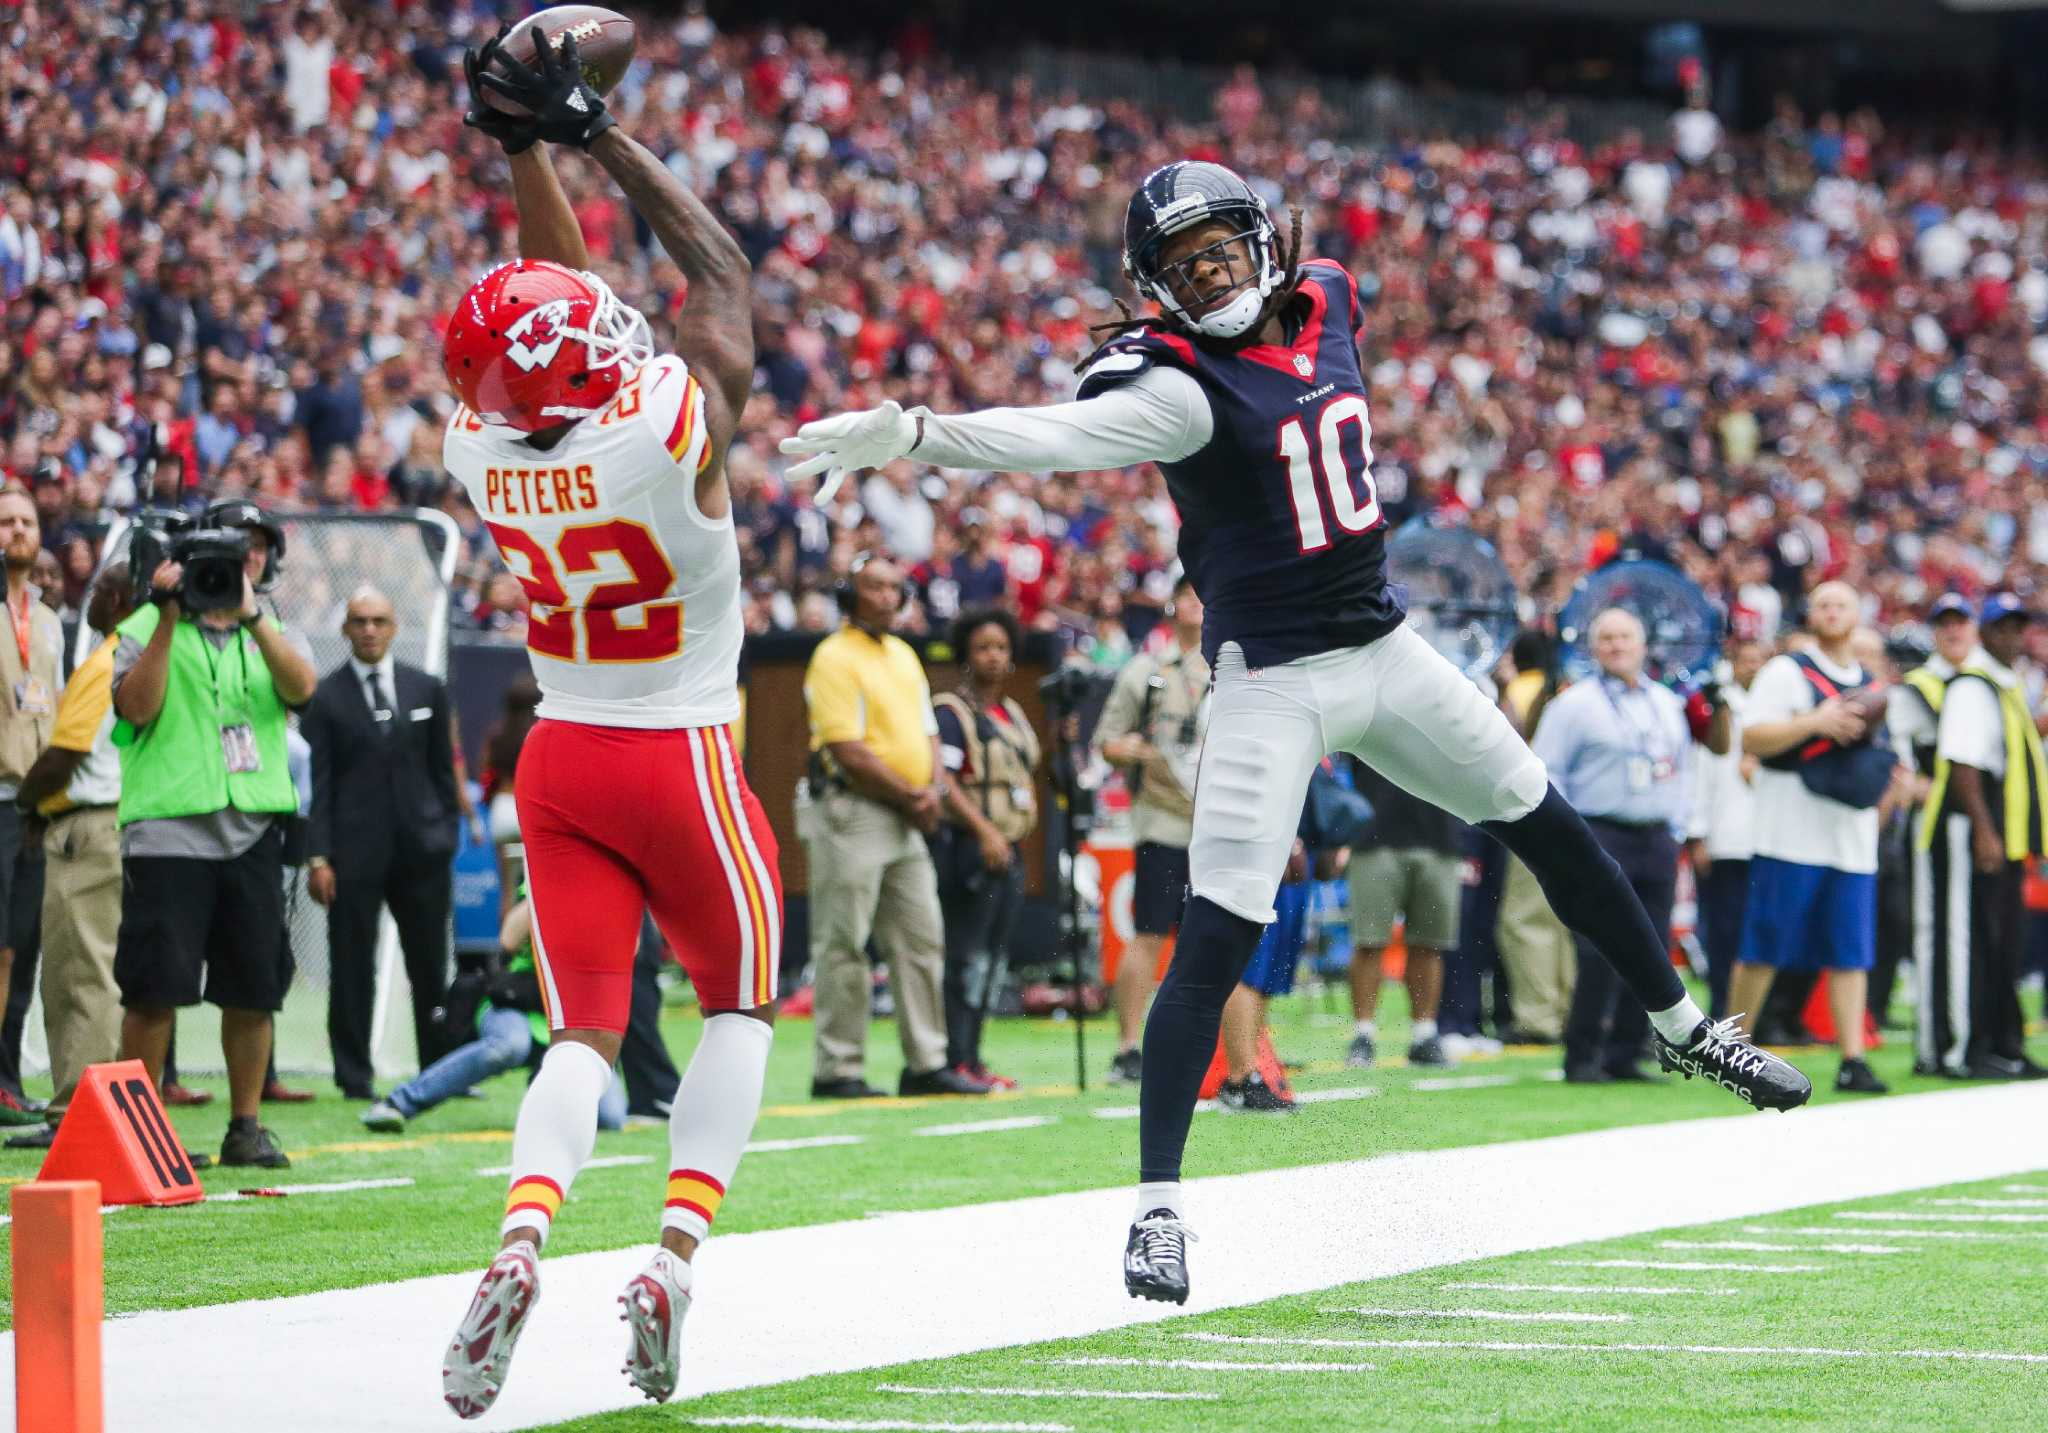 Texans DeAndre Hopkins Will Fuller duo tops Marcus Peters and